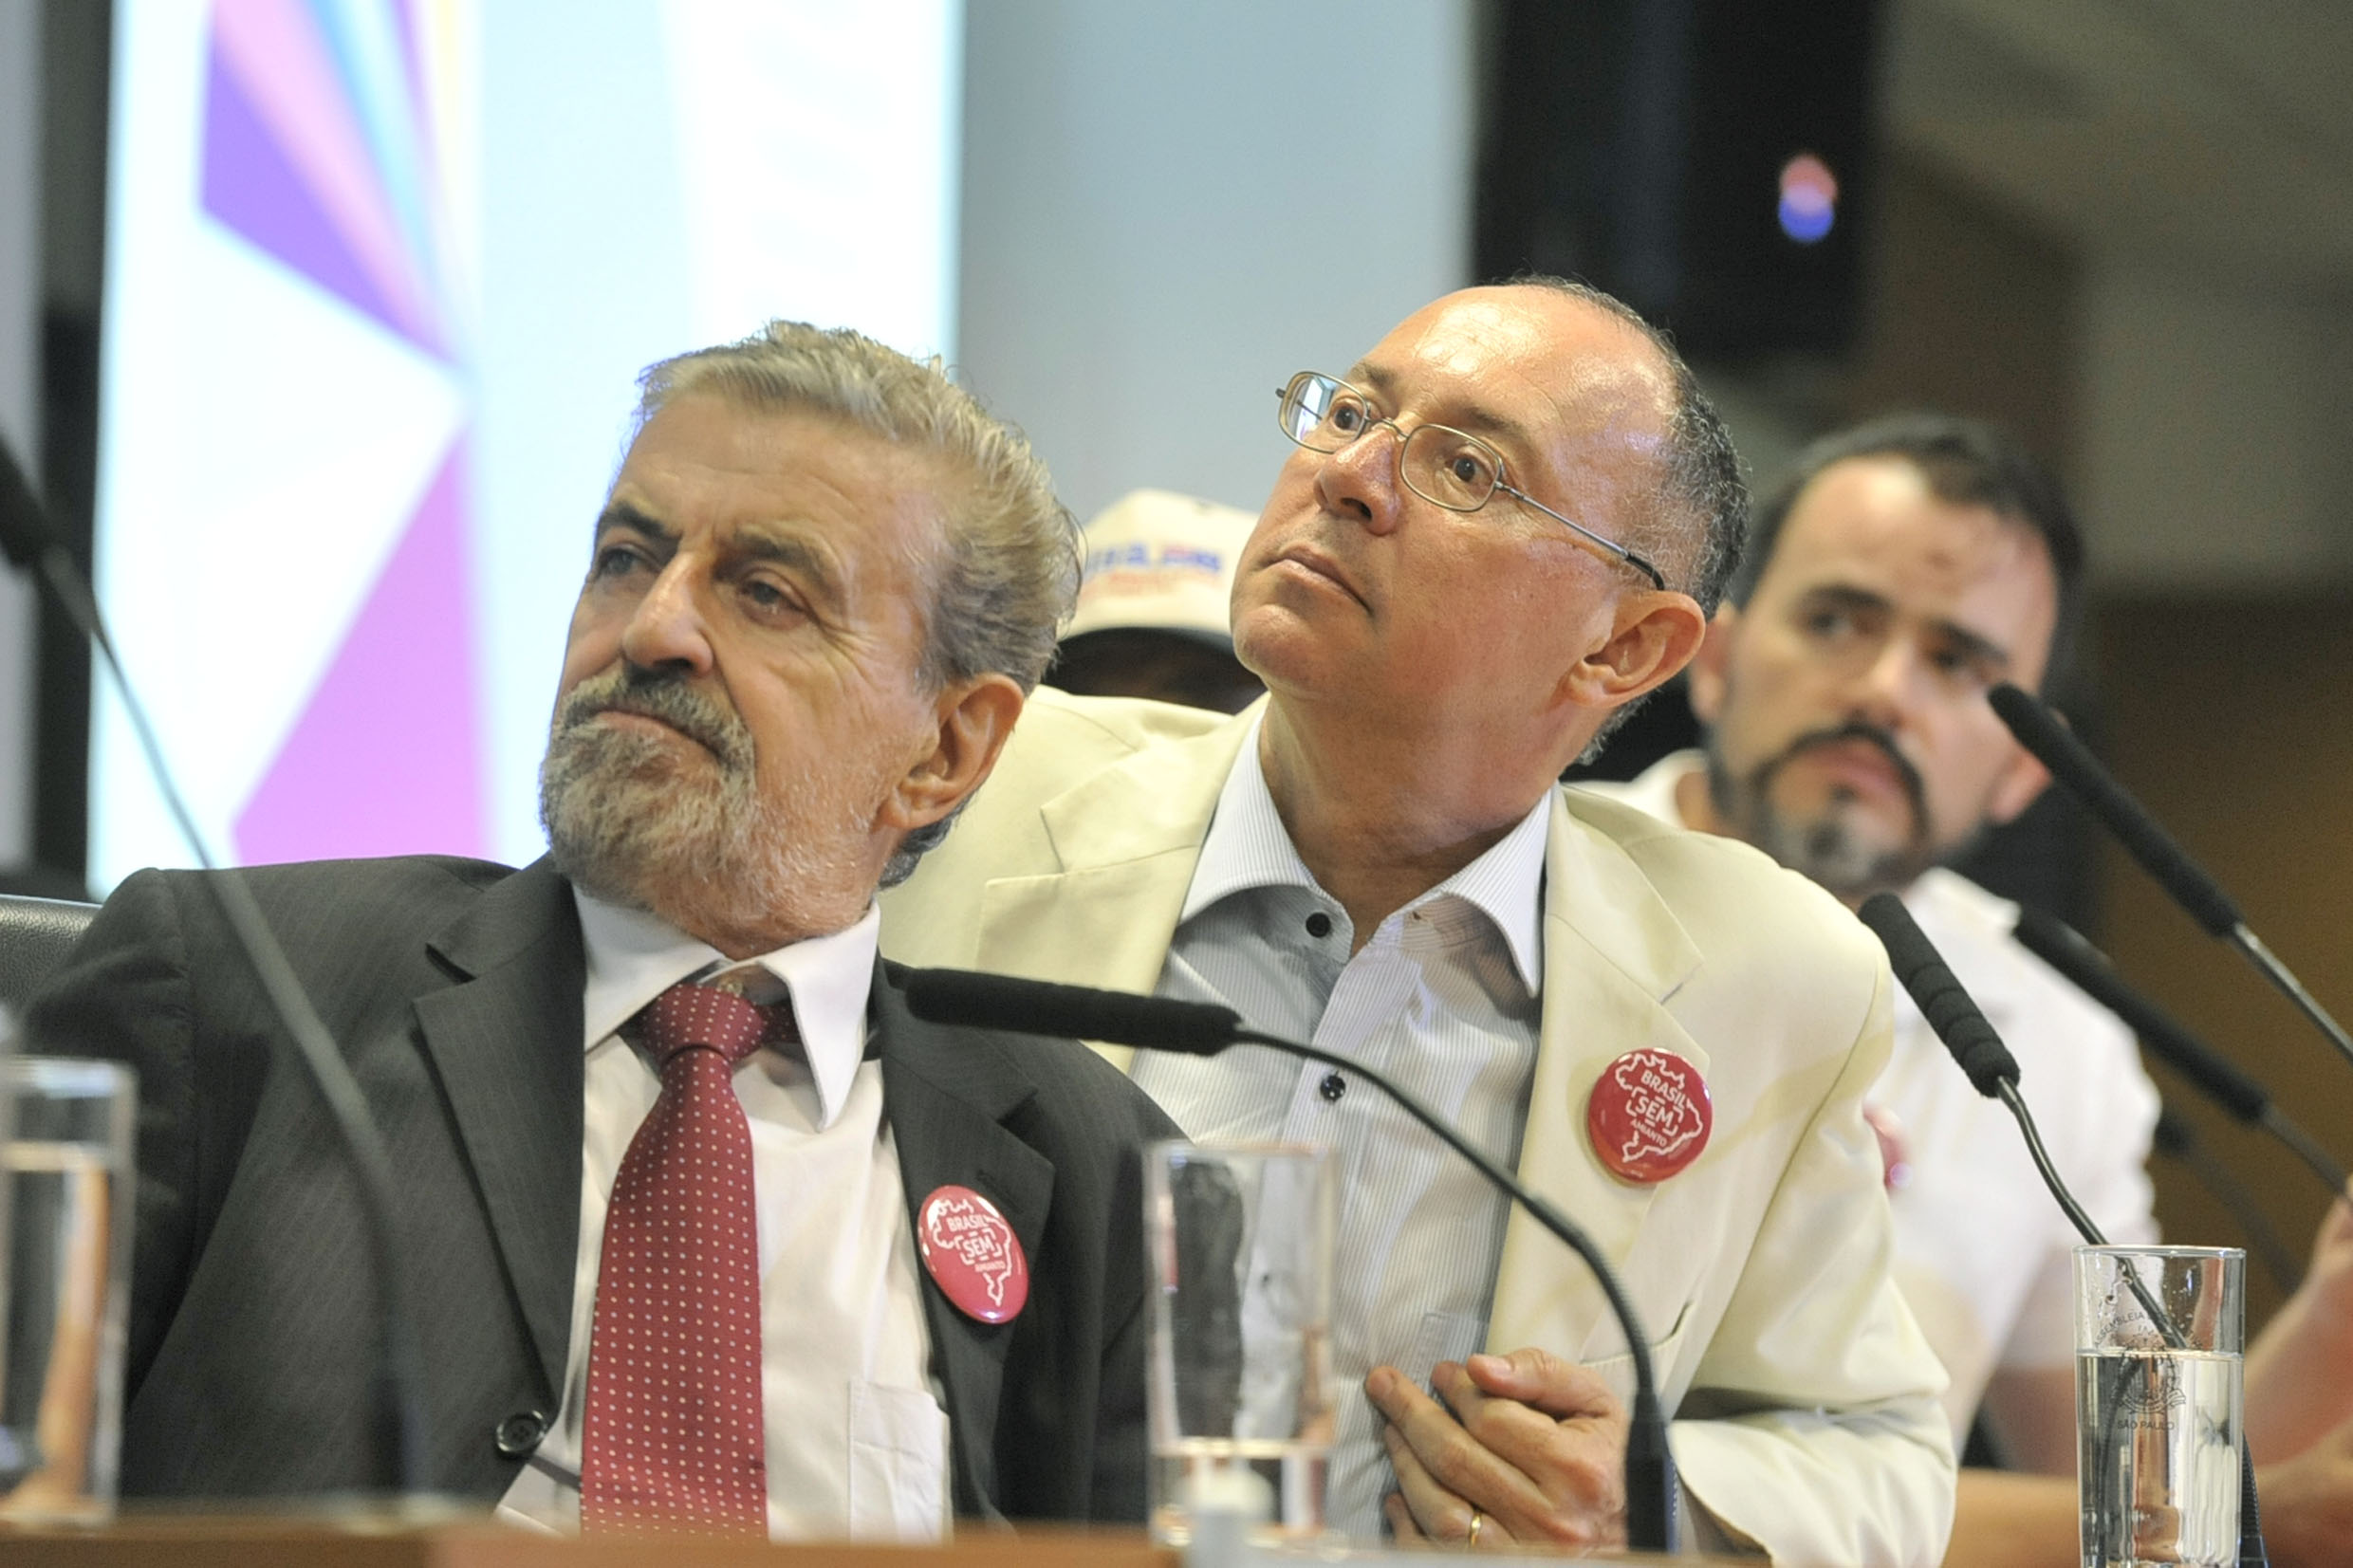 Marcos Martins e Paulo Fiorilo<a style='float:right' href='https://www3.al.sp.gov.br/repositorio/noticia/N-04-2019/fg233283.jpg' target=_blank><img src='/_img/material-file-download-white.png' width='14px' alt='Clique para baixar a imagem'></a>